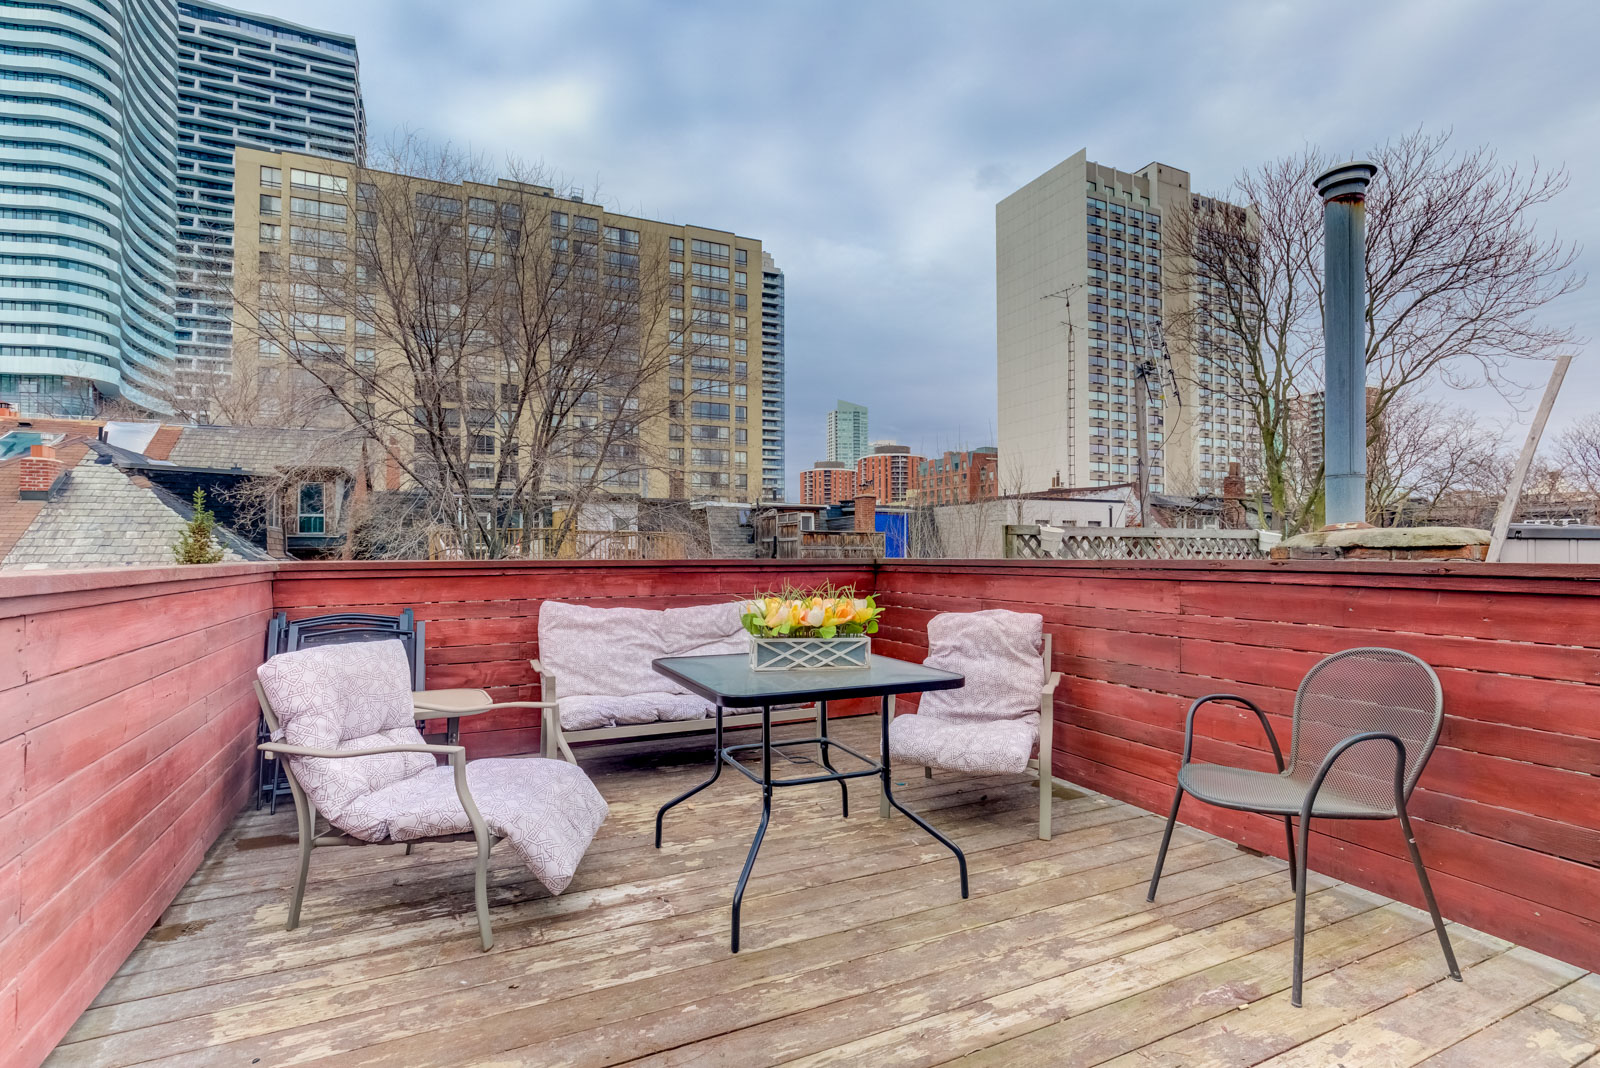 Outdoor wooden deck with chairs and tables on third floor of 120 McGill St.